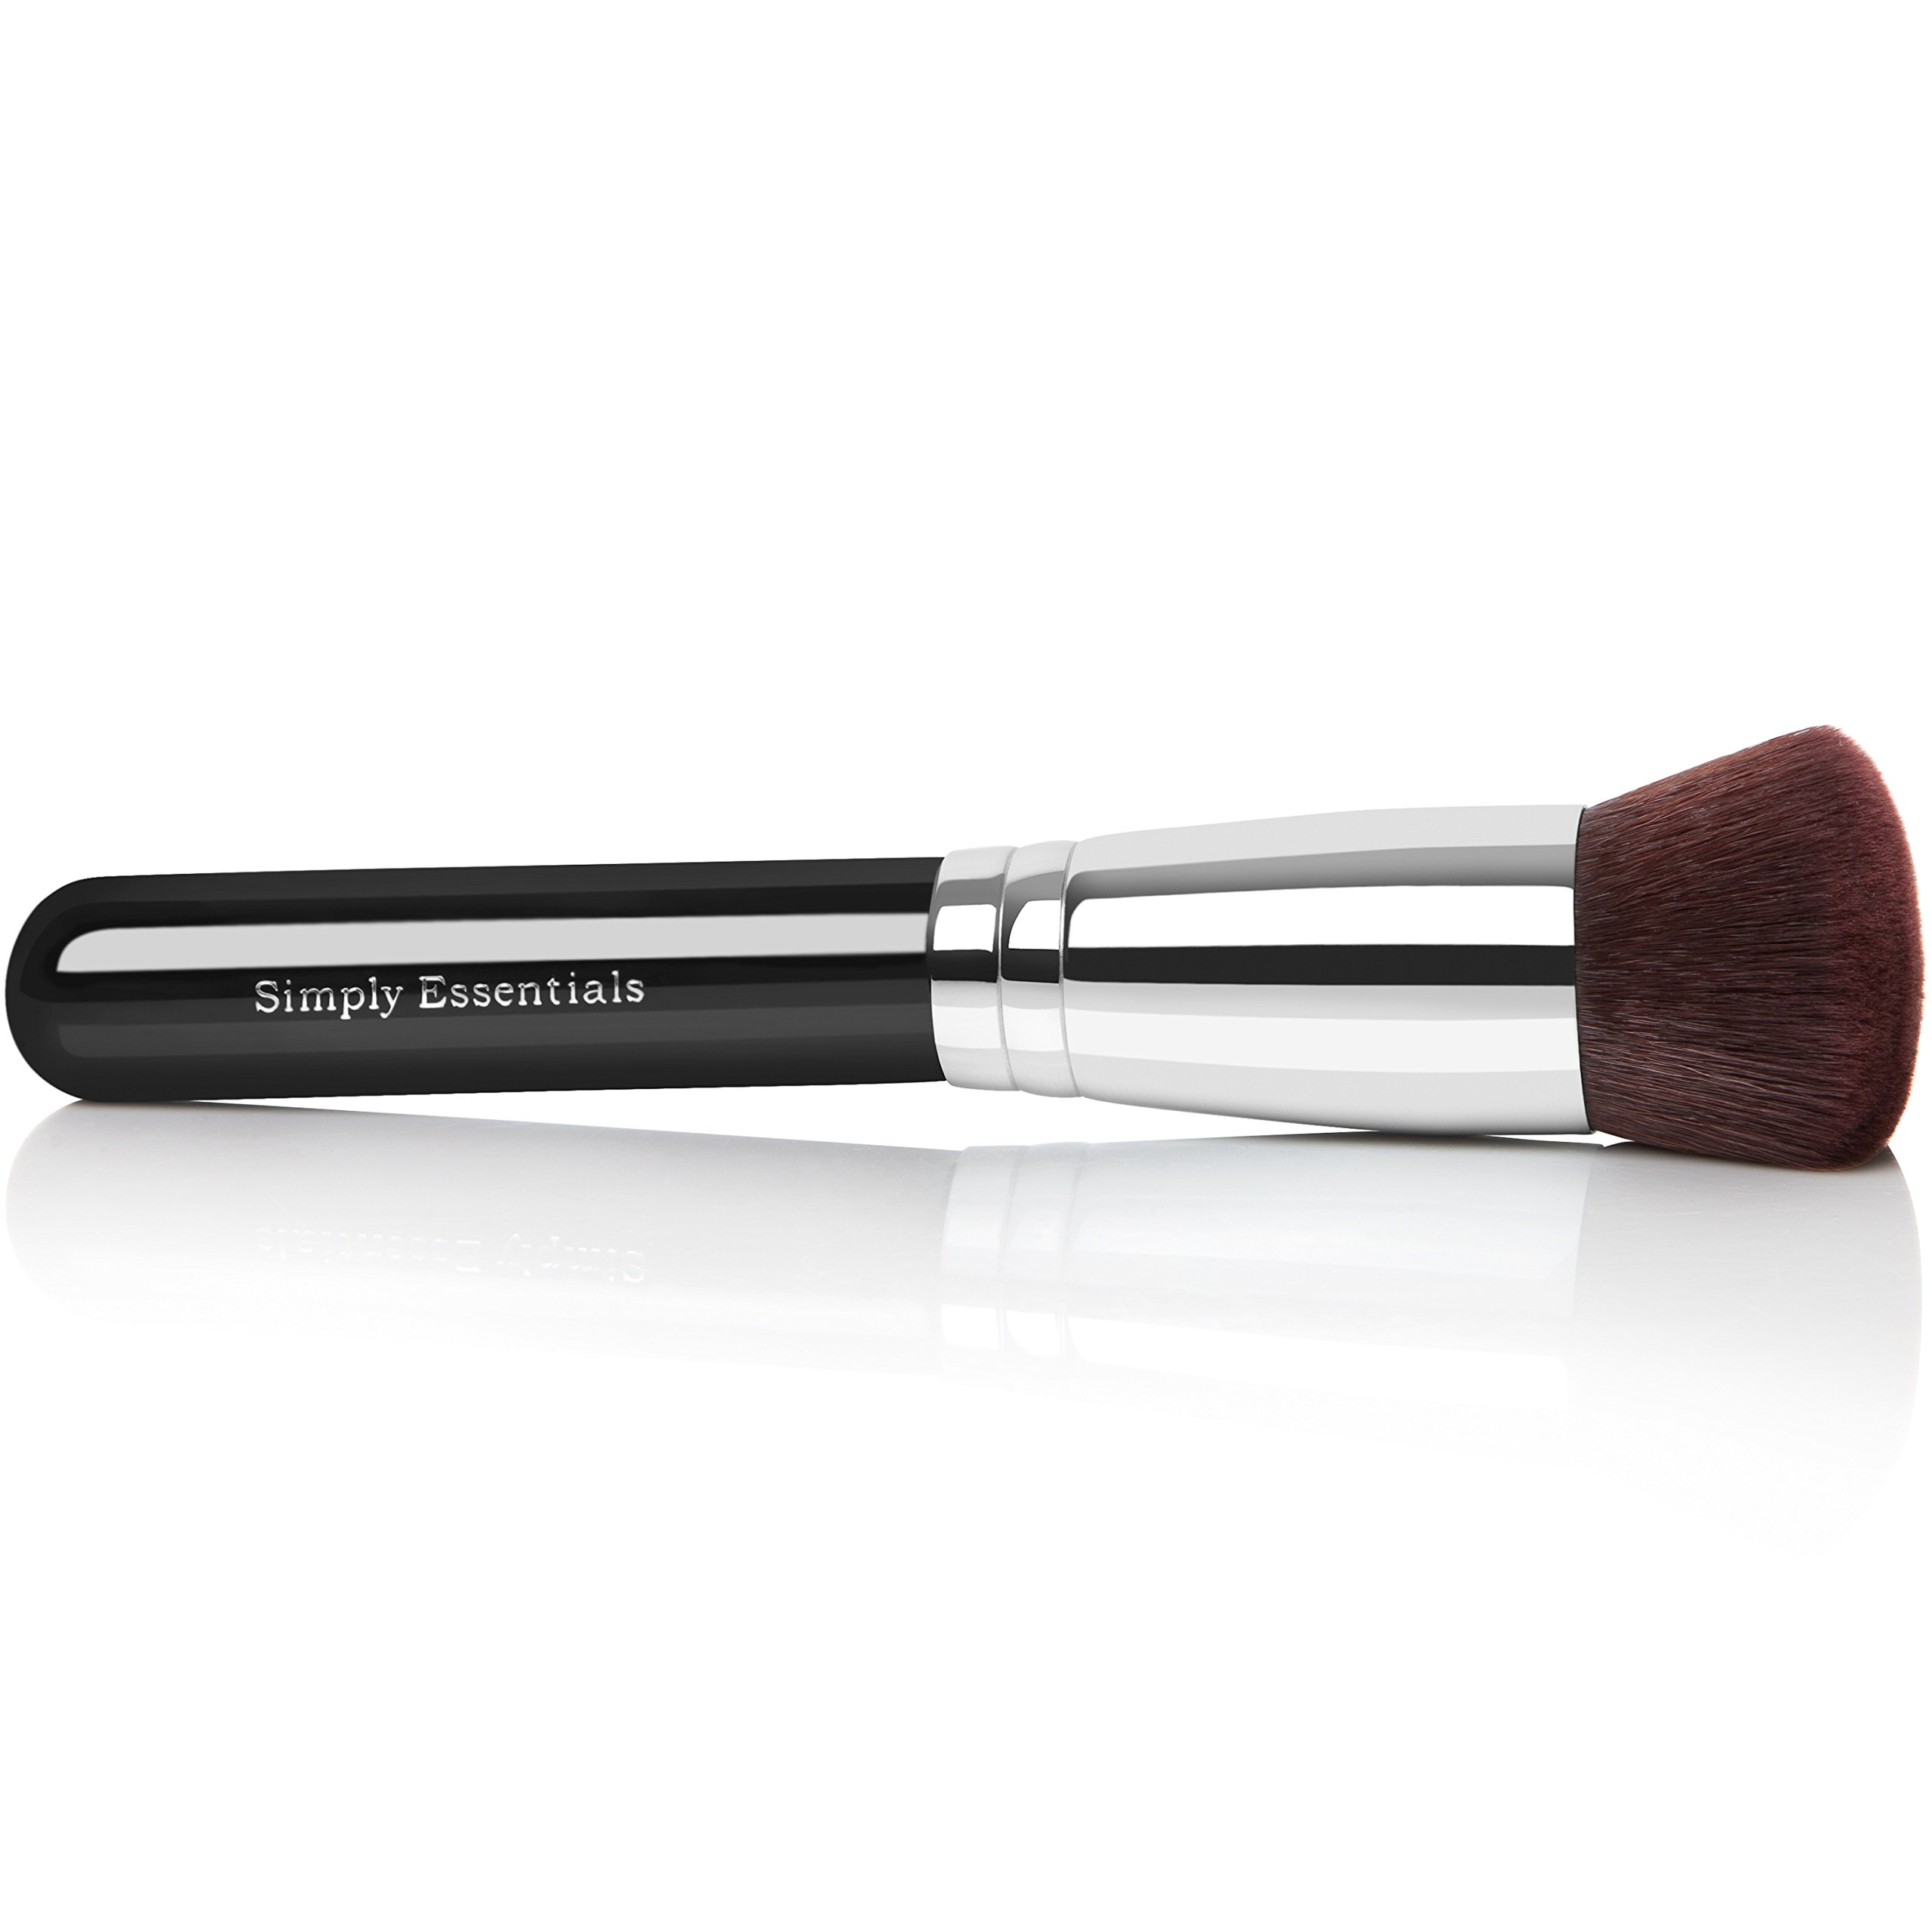 BEST ROUND KABUKI MAKEUP BRUSH for Liquid, Cream Mineral, Powder Foundation & Face Cosmetics - Prime Quality Design - Carrying Case & E-Book Included